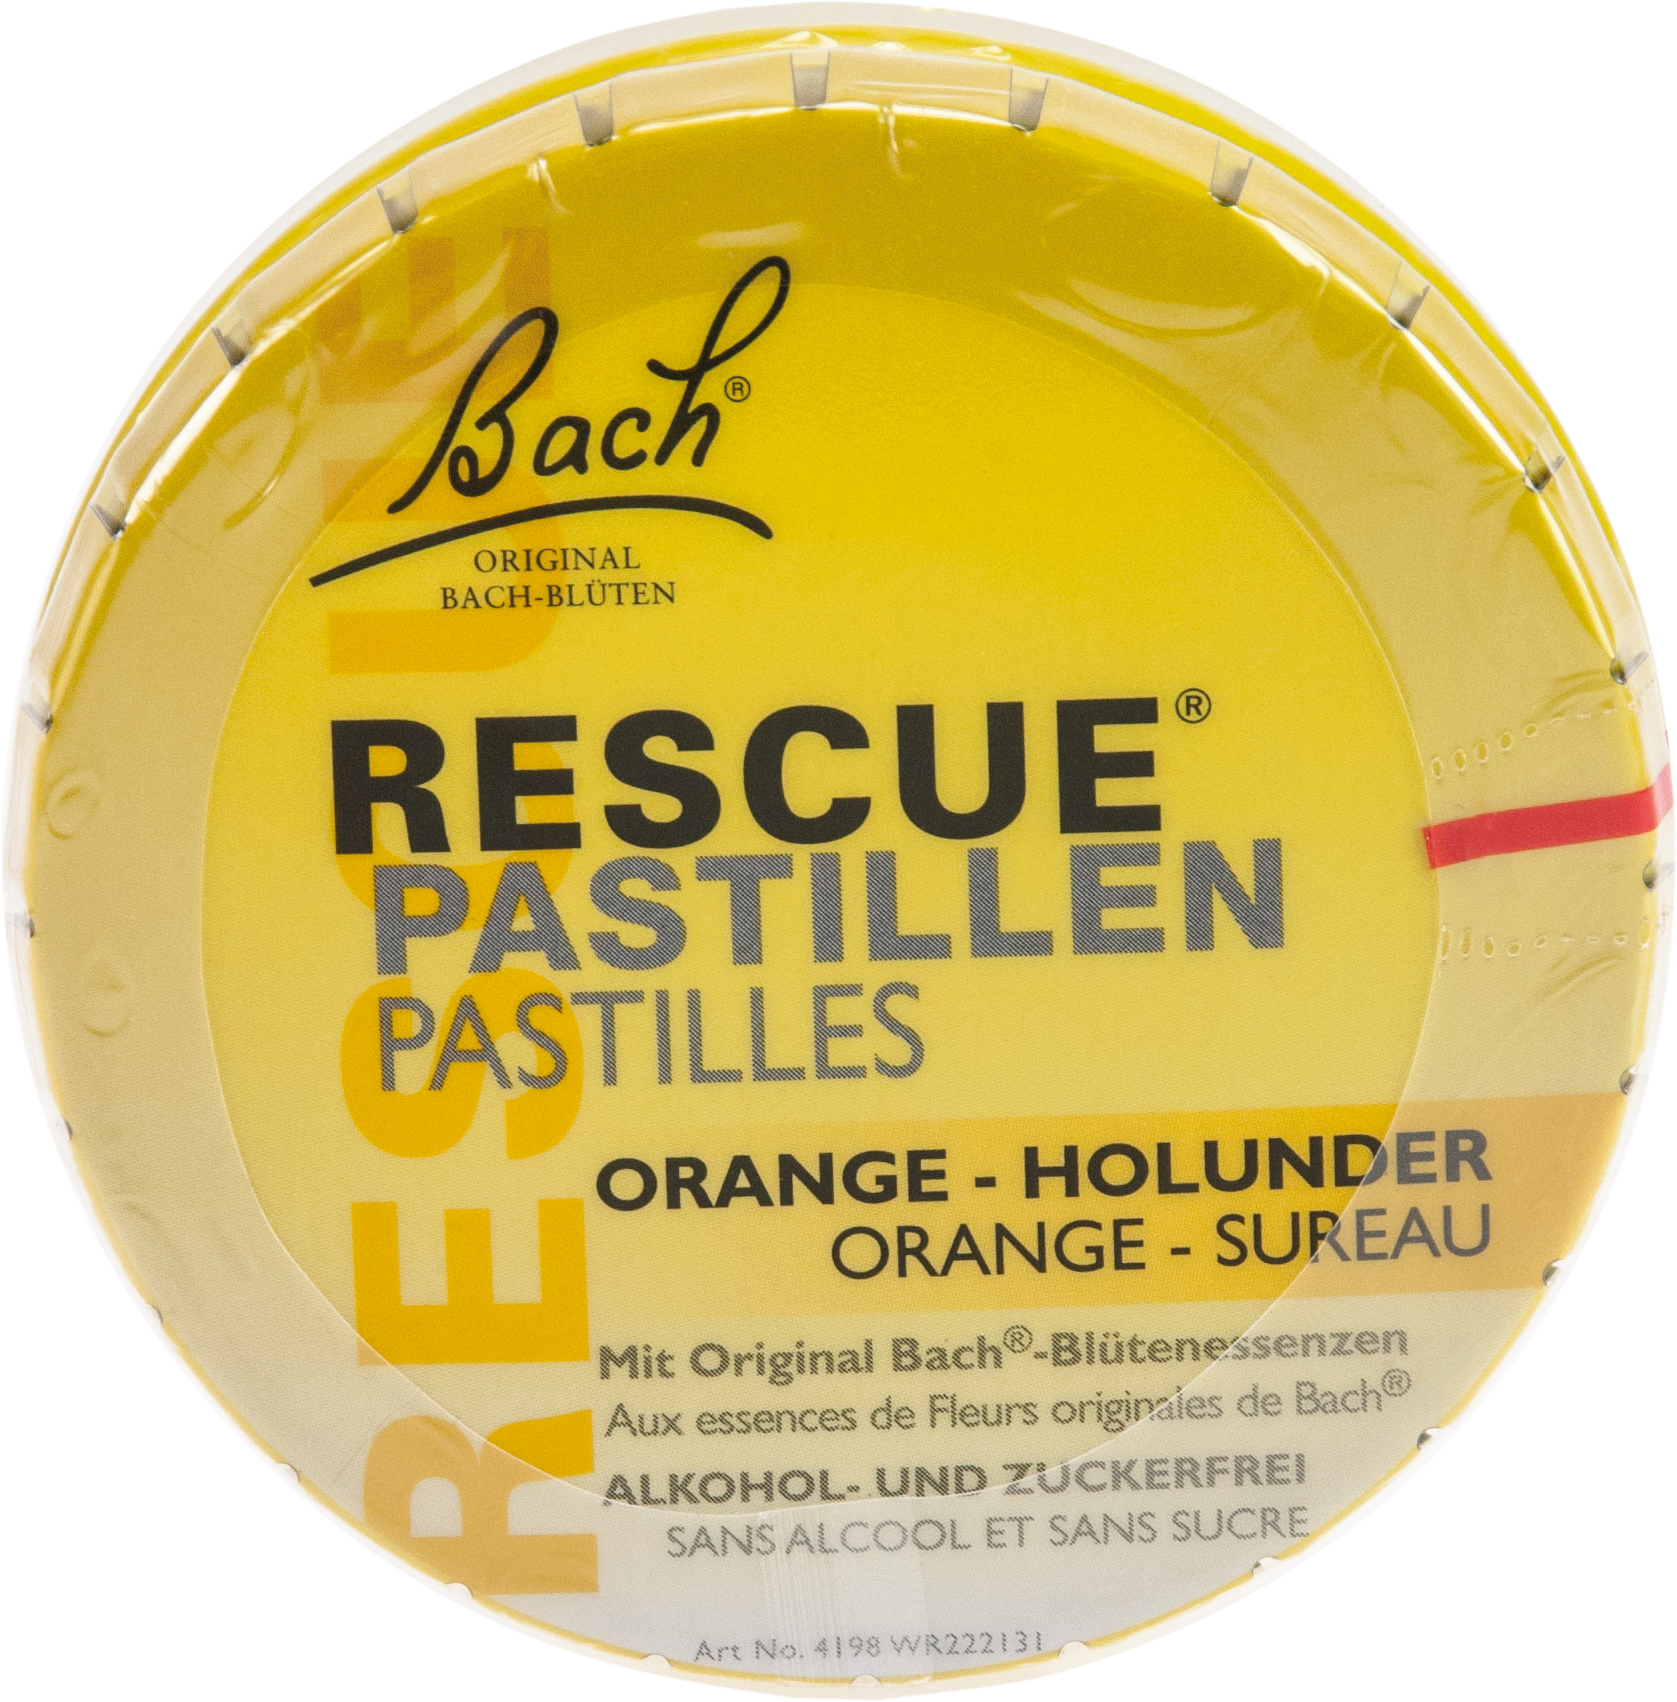 Bach Original Rescue Pastillen Orange-Holunder